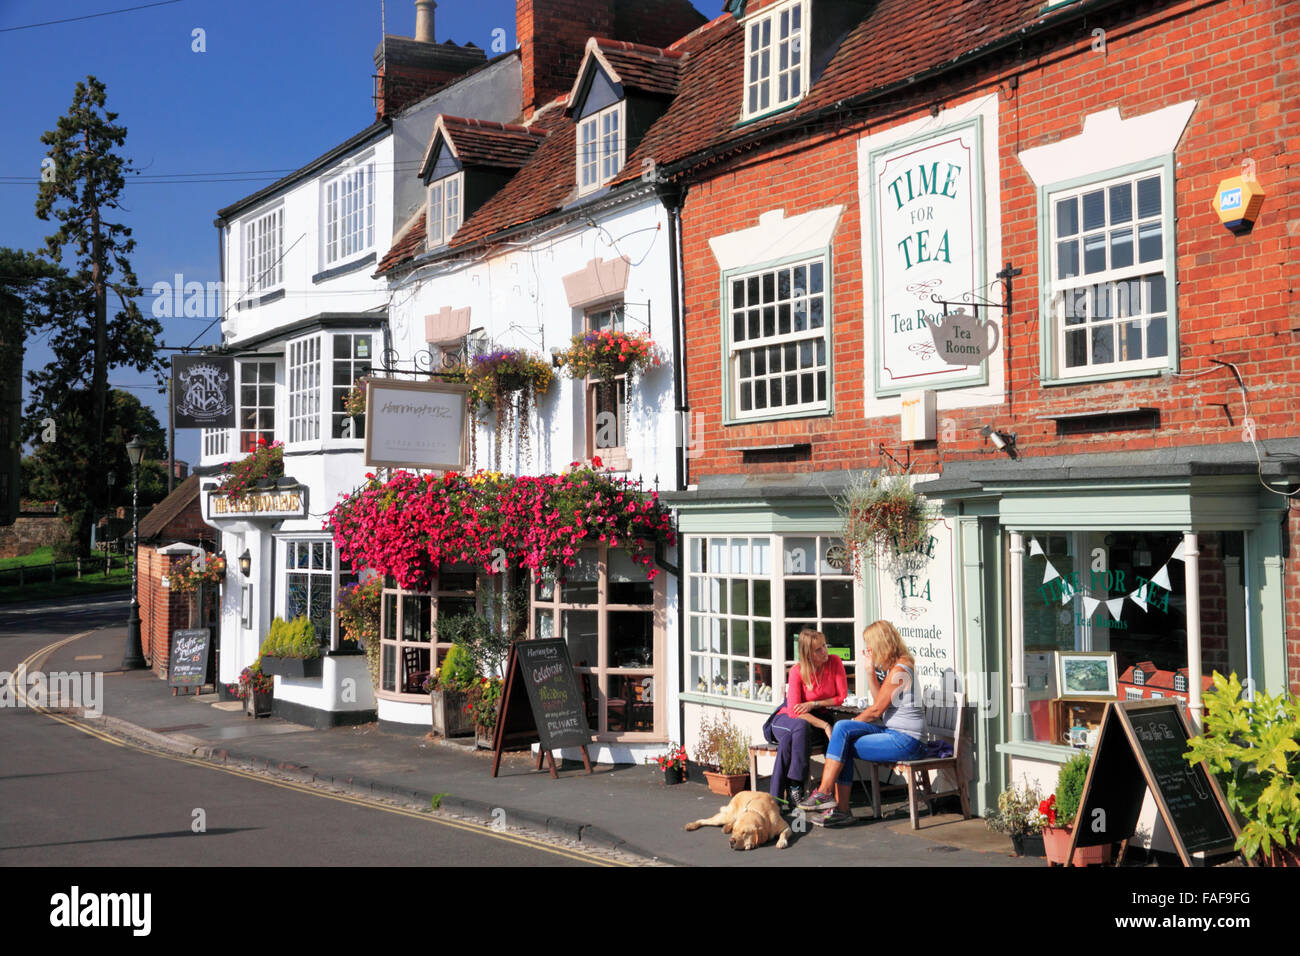 Enjoying the autumn sunshine outside a tea shop at Castle Hill, Kenilworth, Warwickshire. Stock Photo